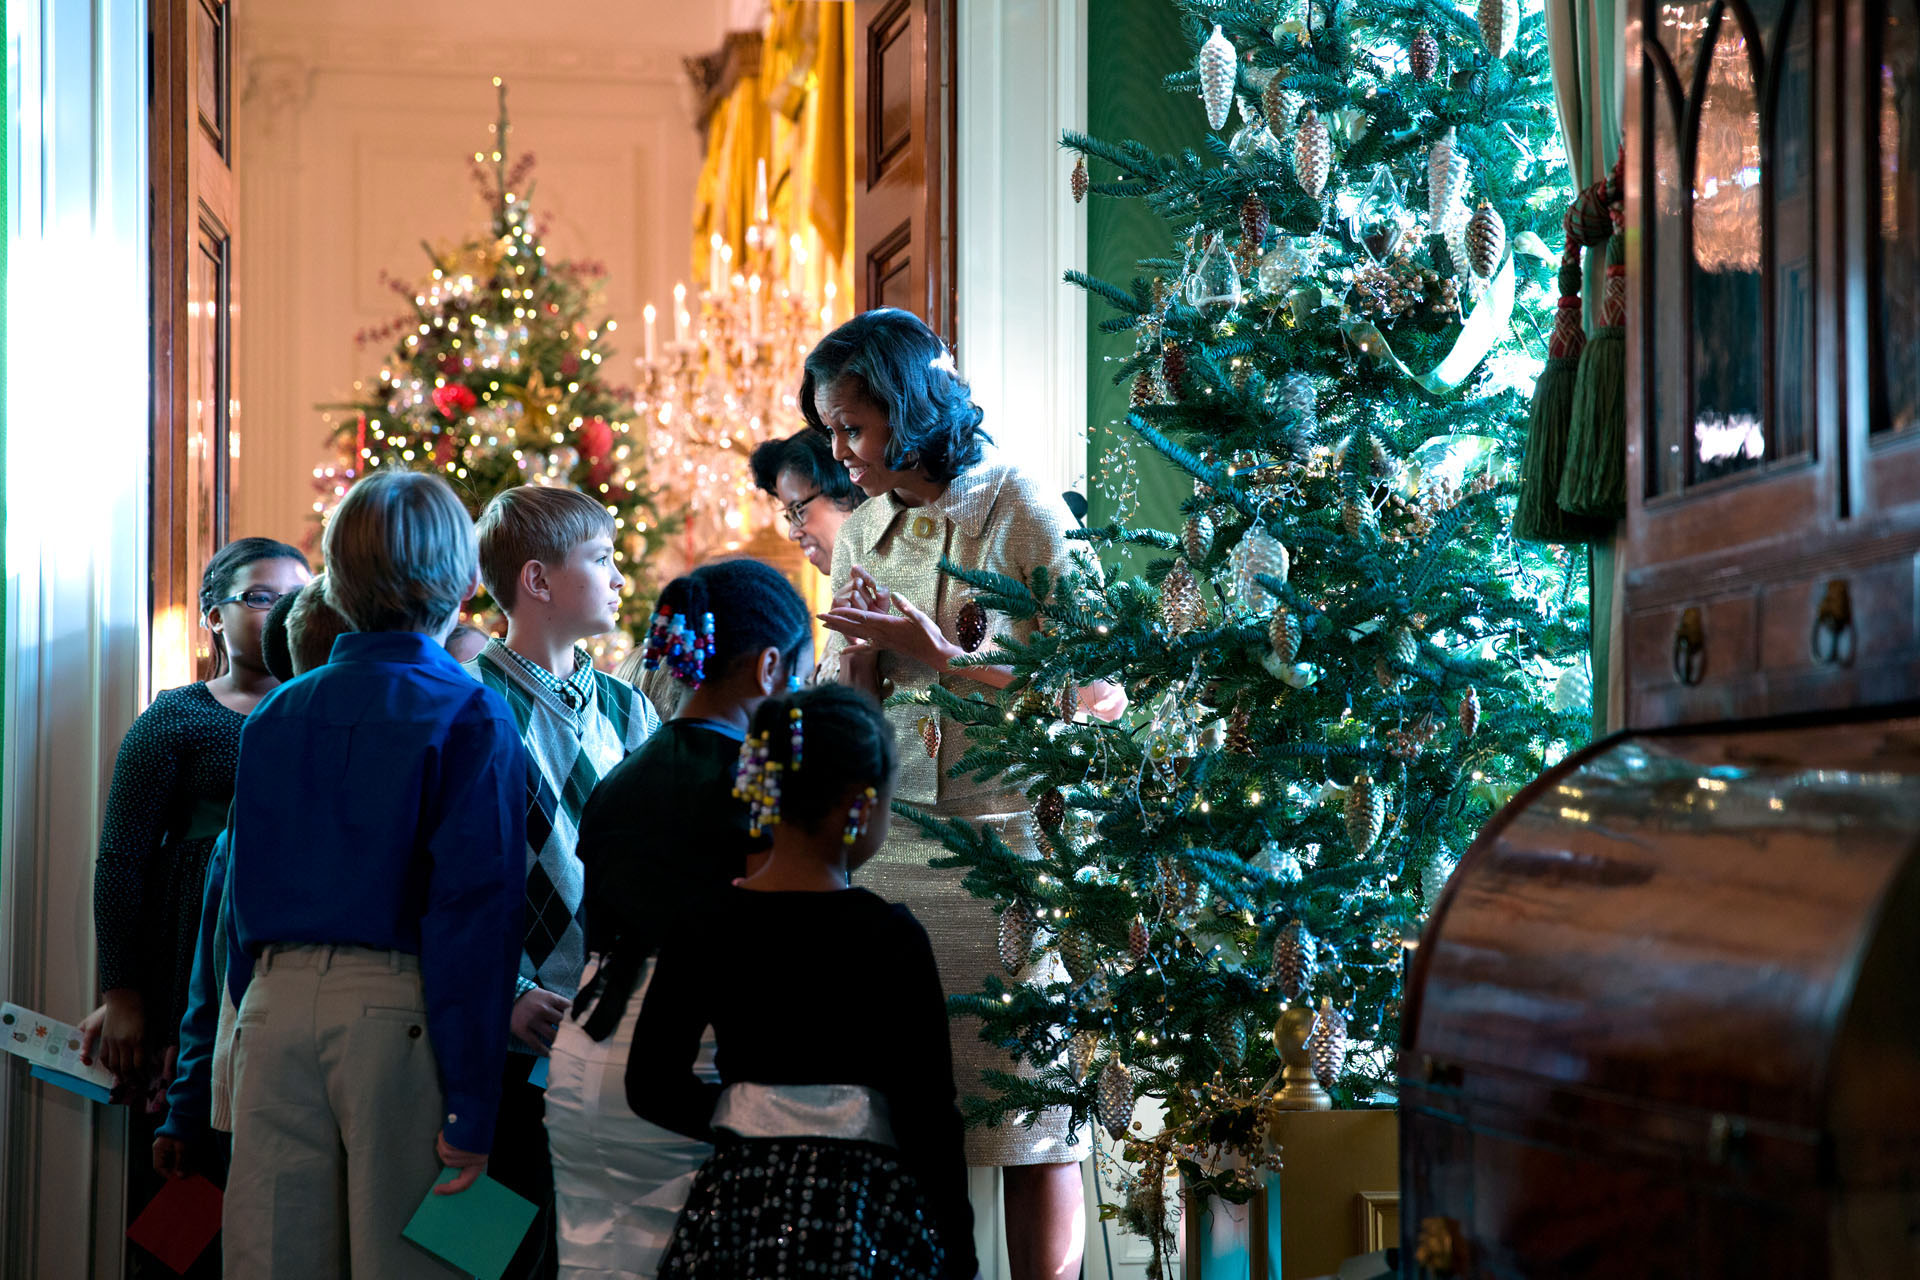 Whitehouse Christmas Decorations.Joy To All First Lady Michelle Obama Previews The 2012